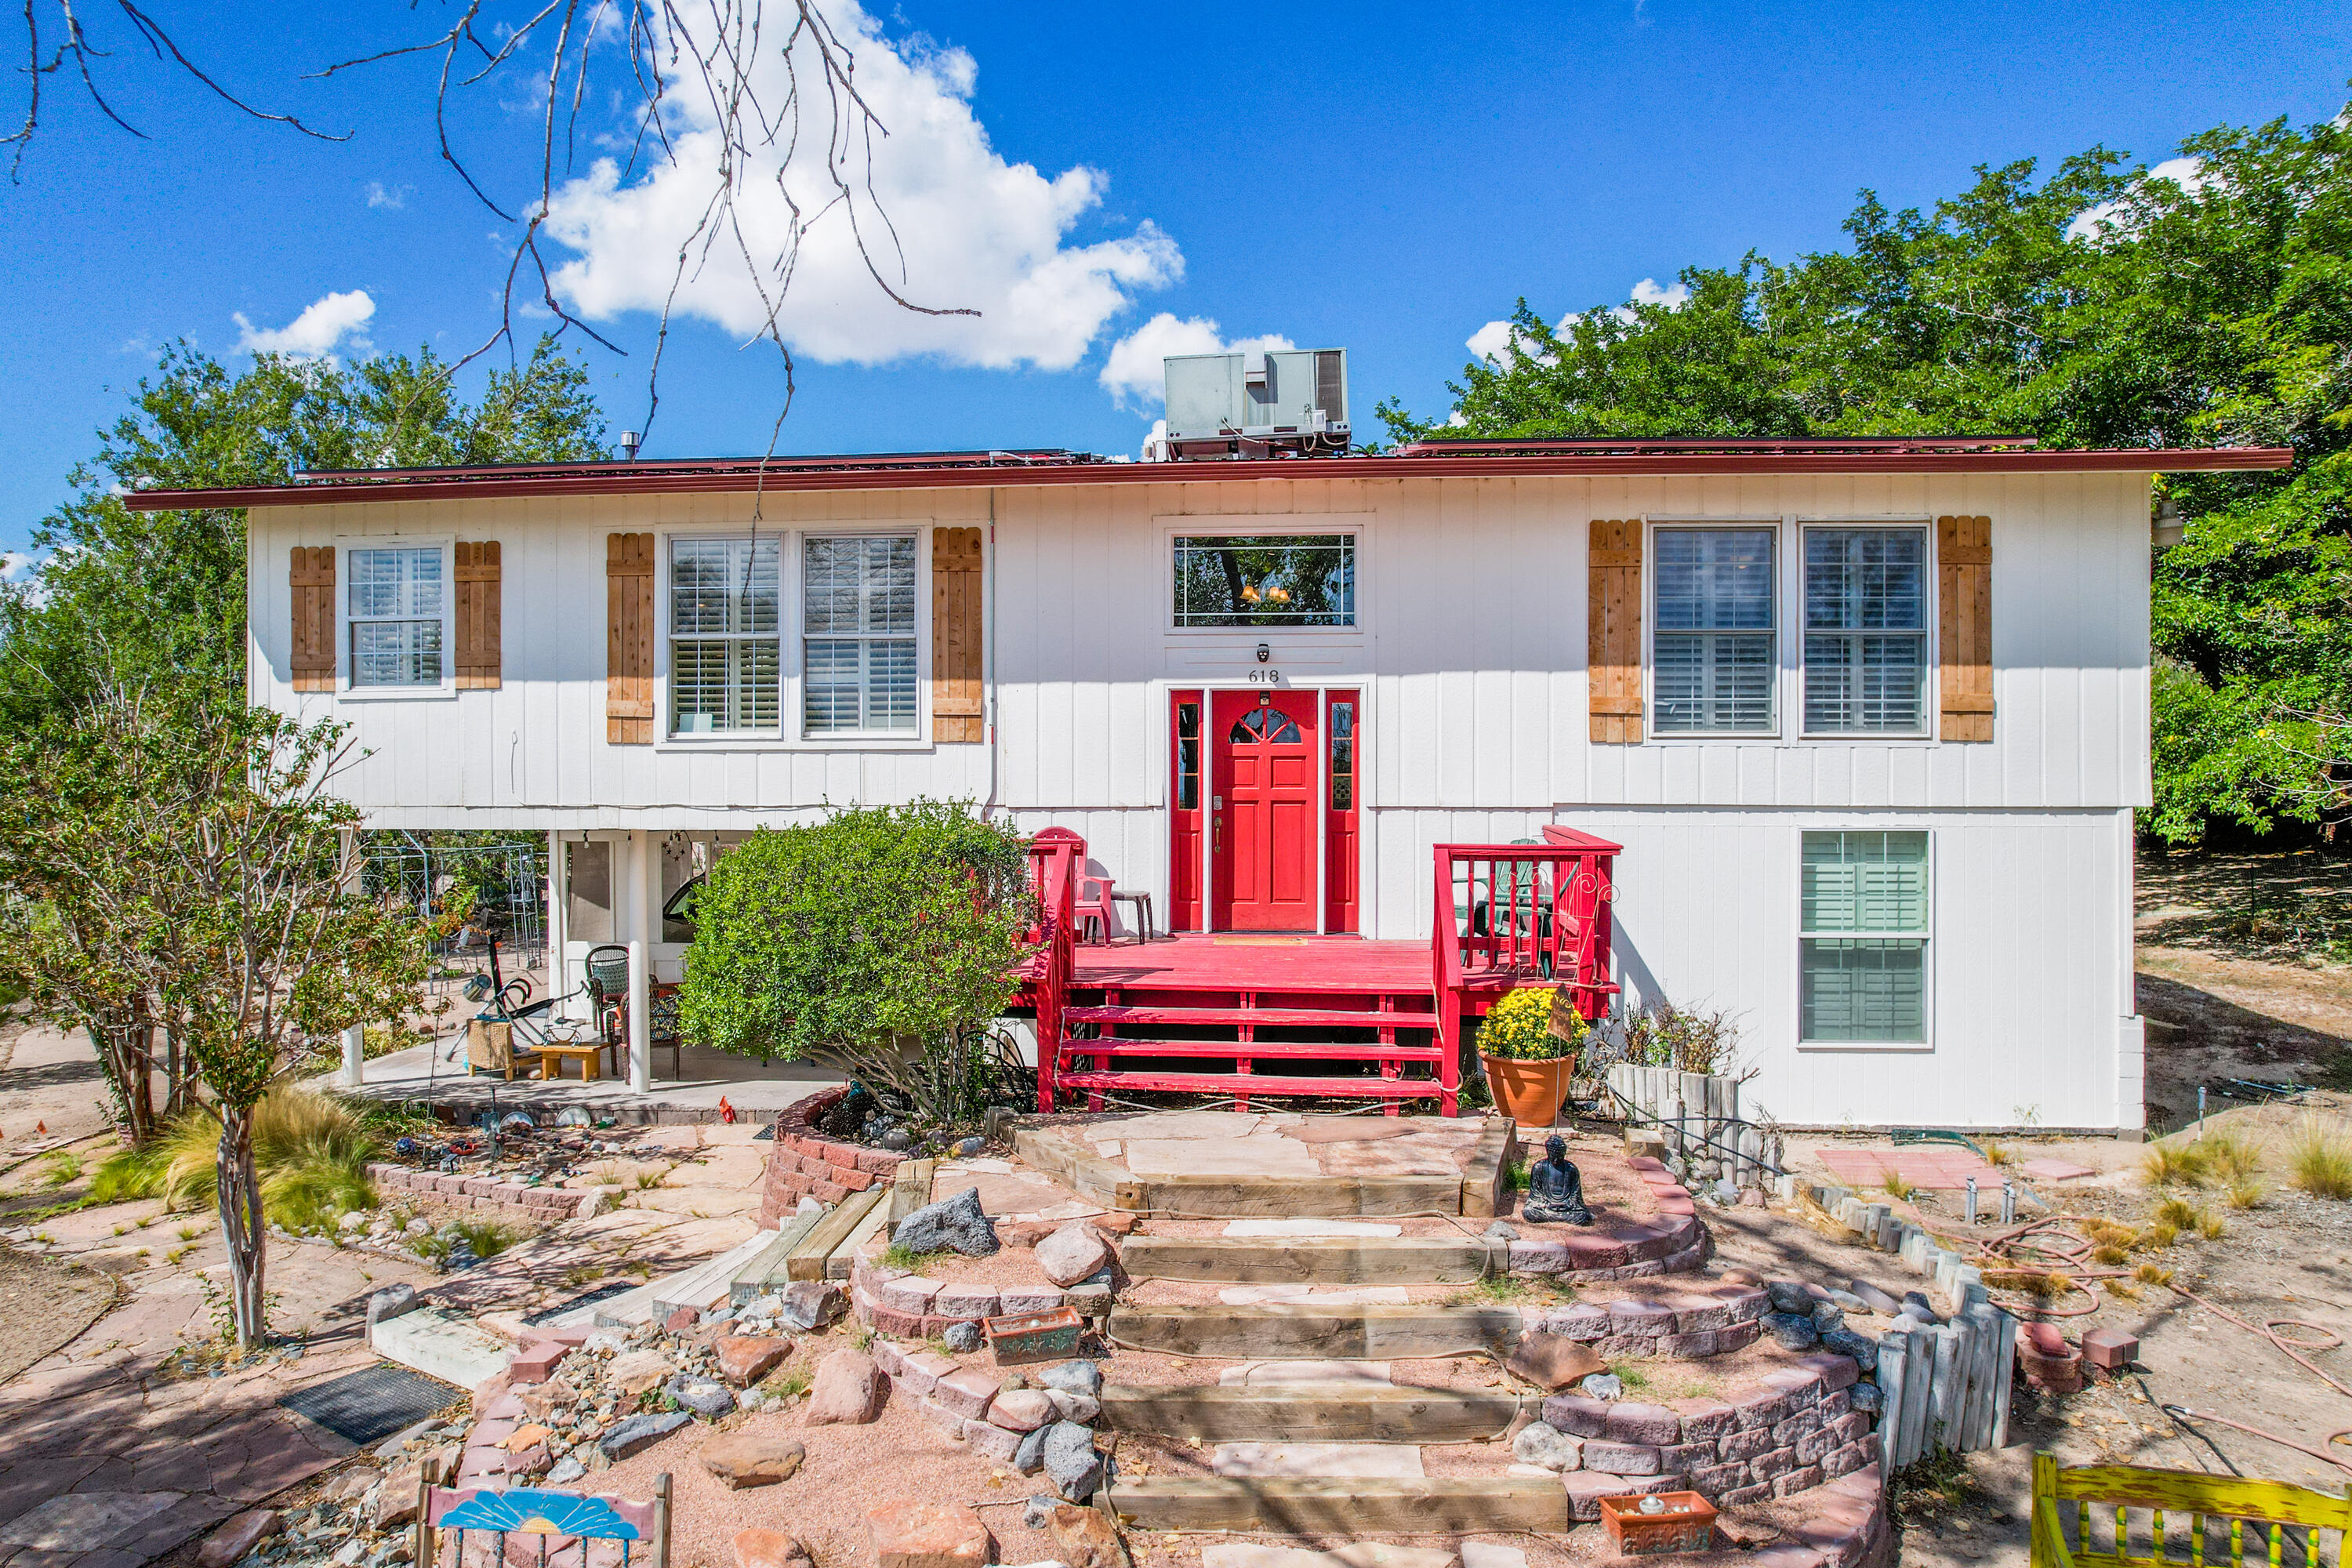 This unique Property in the Village of Corrales carries with it a variety of opportunities!  Presently operated as a permitted  Air B&B. The downstairs of this home is set up as a Casita with long term tenants renting month to month at $900.00.  The upstairs has 2 Large bedrooms, a Large Kitchen open to the living /Dining rooms. Add to that an Incredible view.  The Detached Studio/Workshop/multi purpose building has Lots of potential uses.If a new owner wanted to just keep everything as-is, with the rental income counted it's like owning a home valued at $565,000.00, But paying for a home that costs $365,000.00.Take a look at this opportunity today!